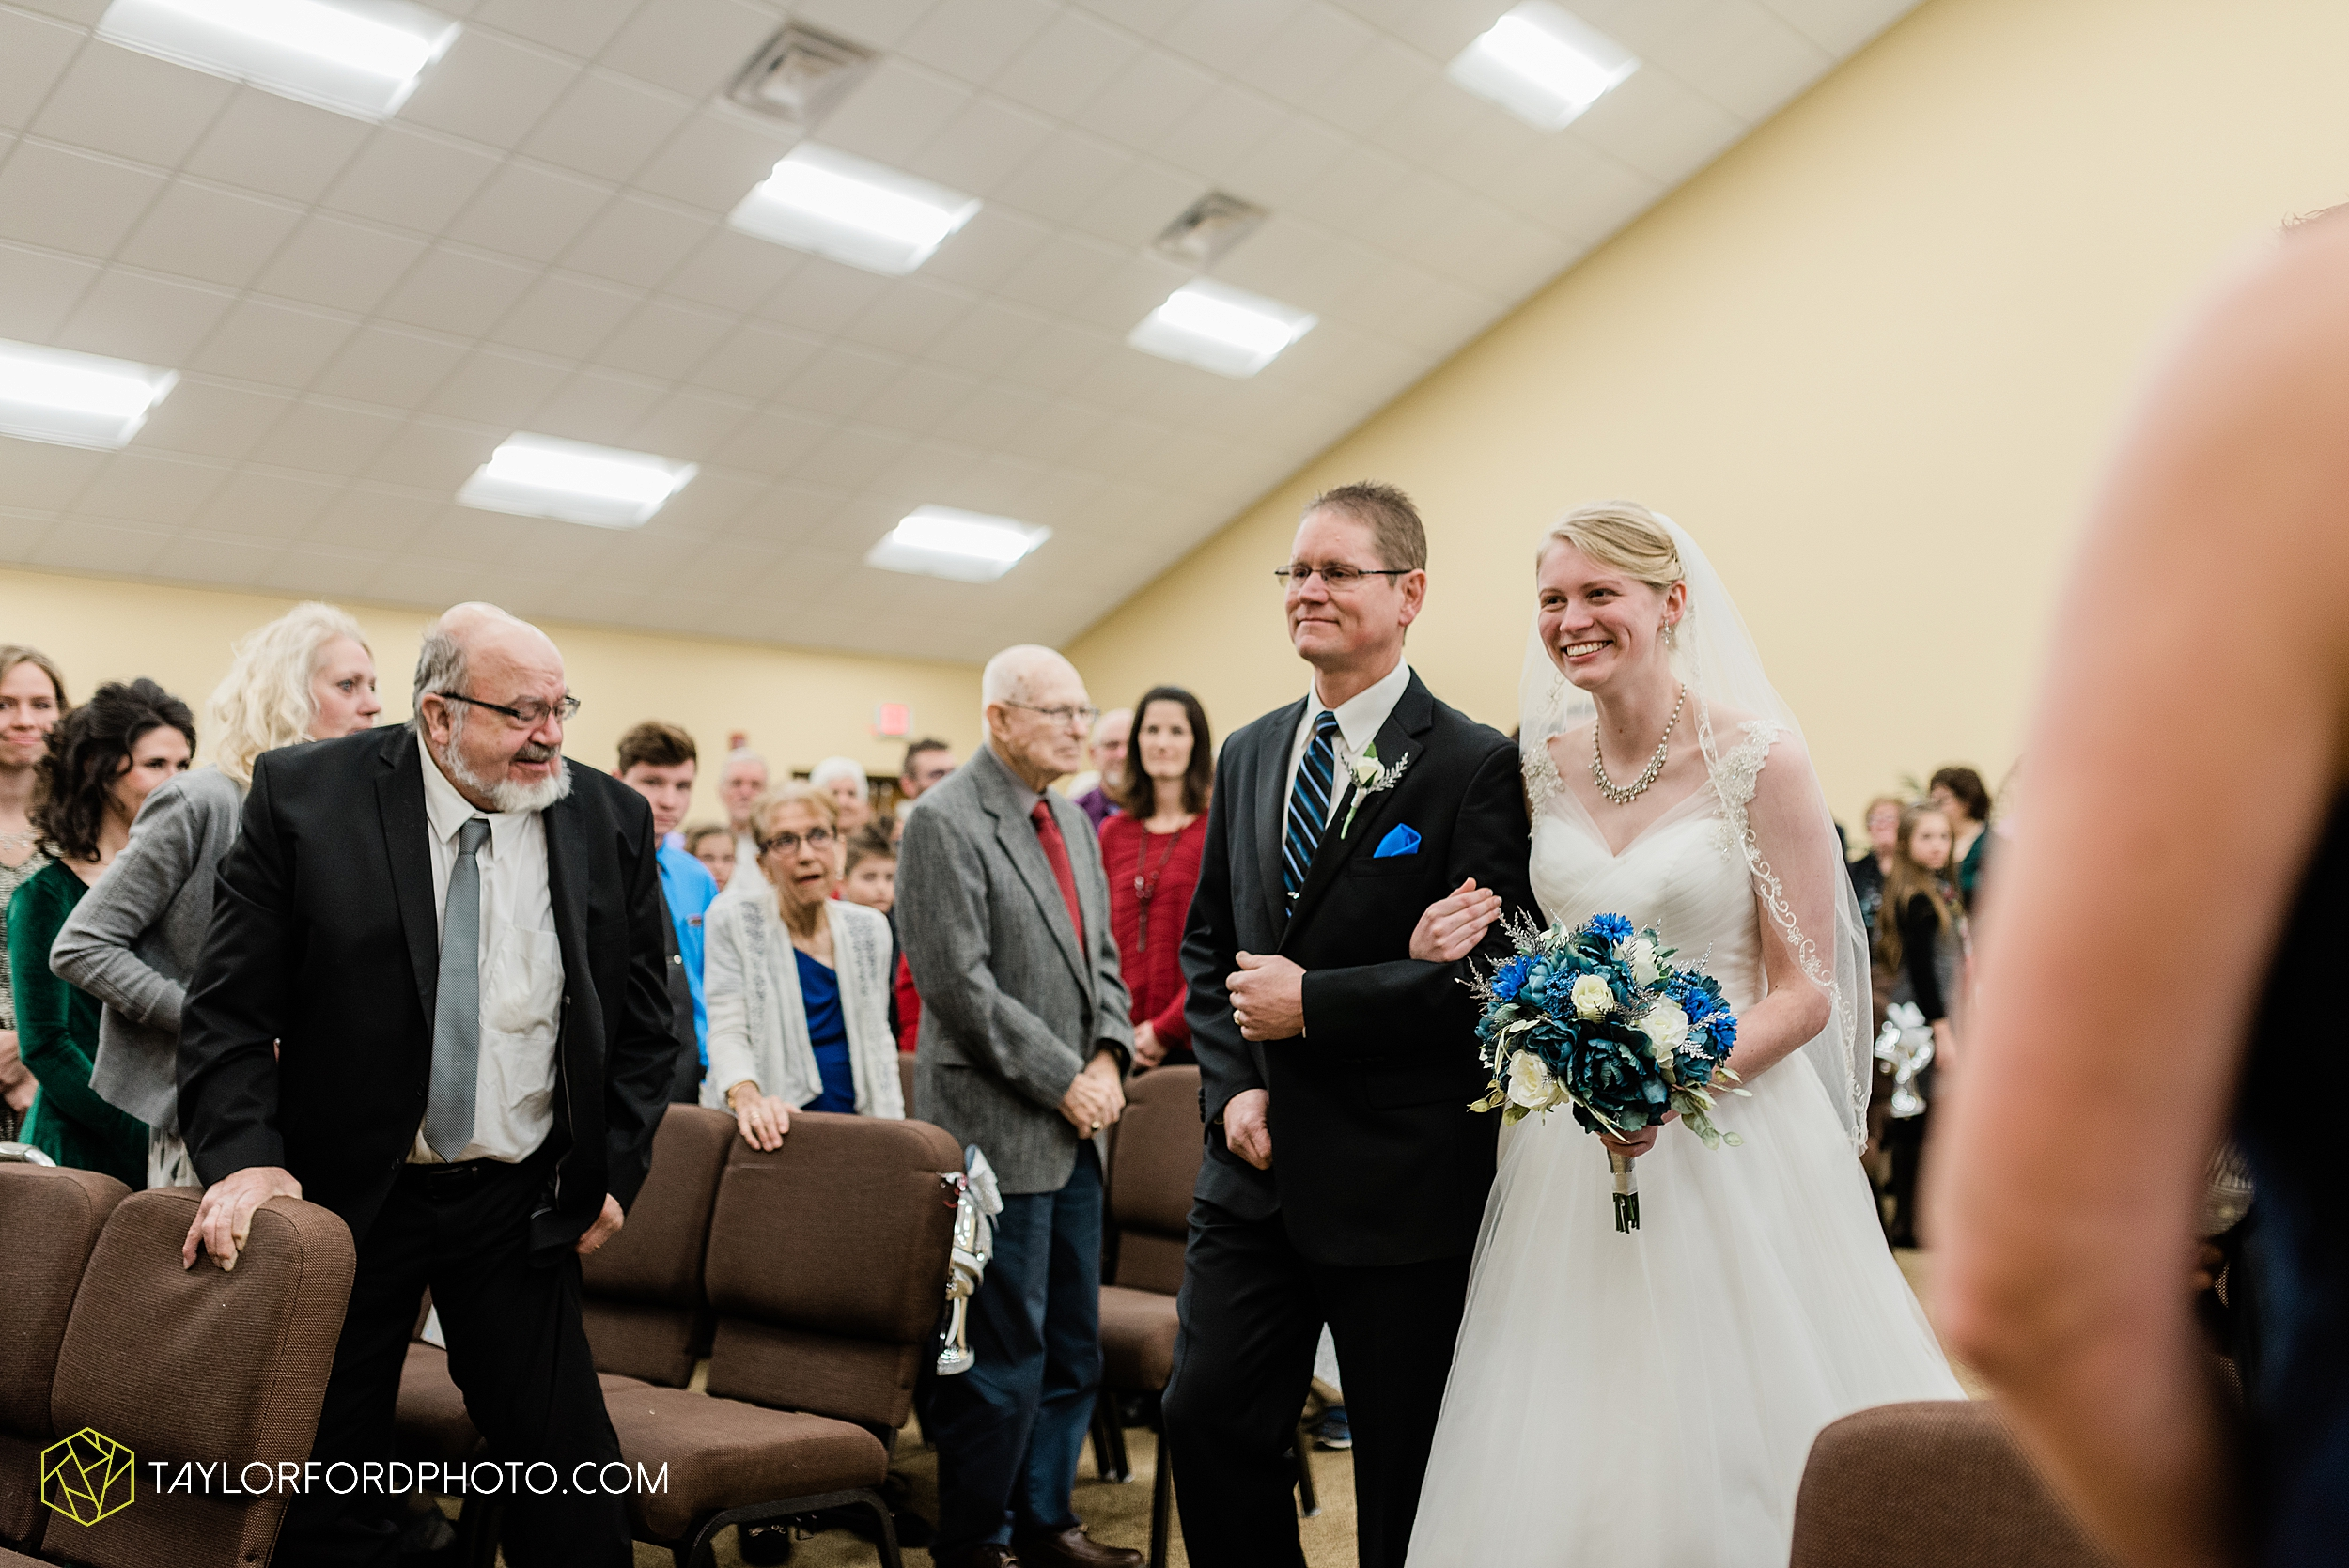 pleasant-view-church-christmas-celina-fraternal-order-of-eagles-reception-wedding-wren-willshire-van-wert-ohio-photography-taylor-ford-hirschy-photographer_2150.jpg